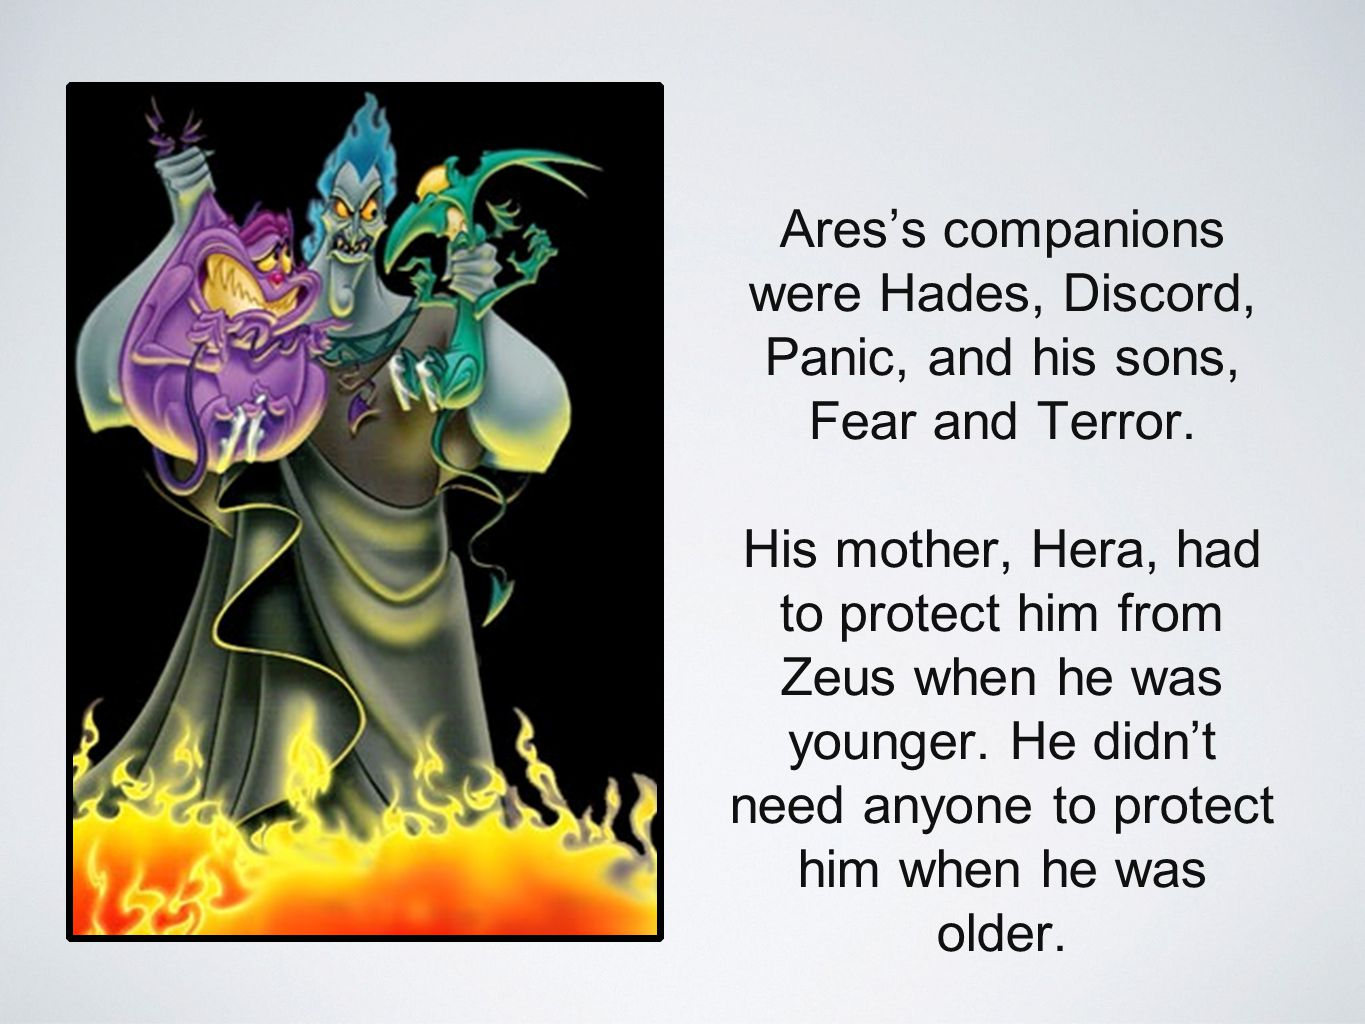 Ares's companions were Hades, Discord, Panic, and his sons, Fear and Terror.